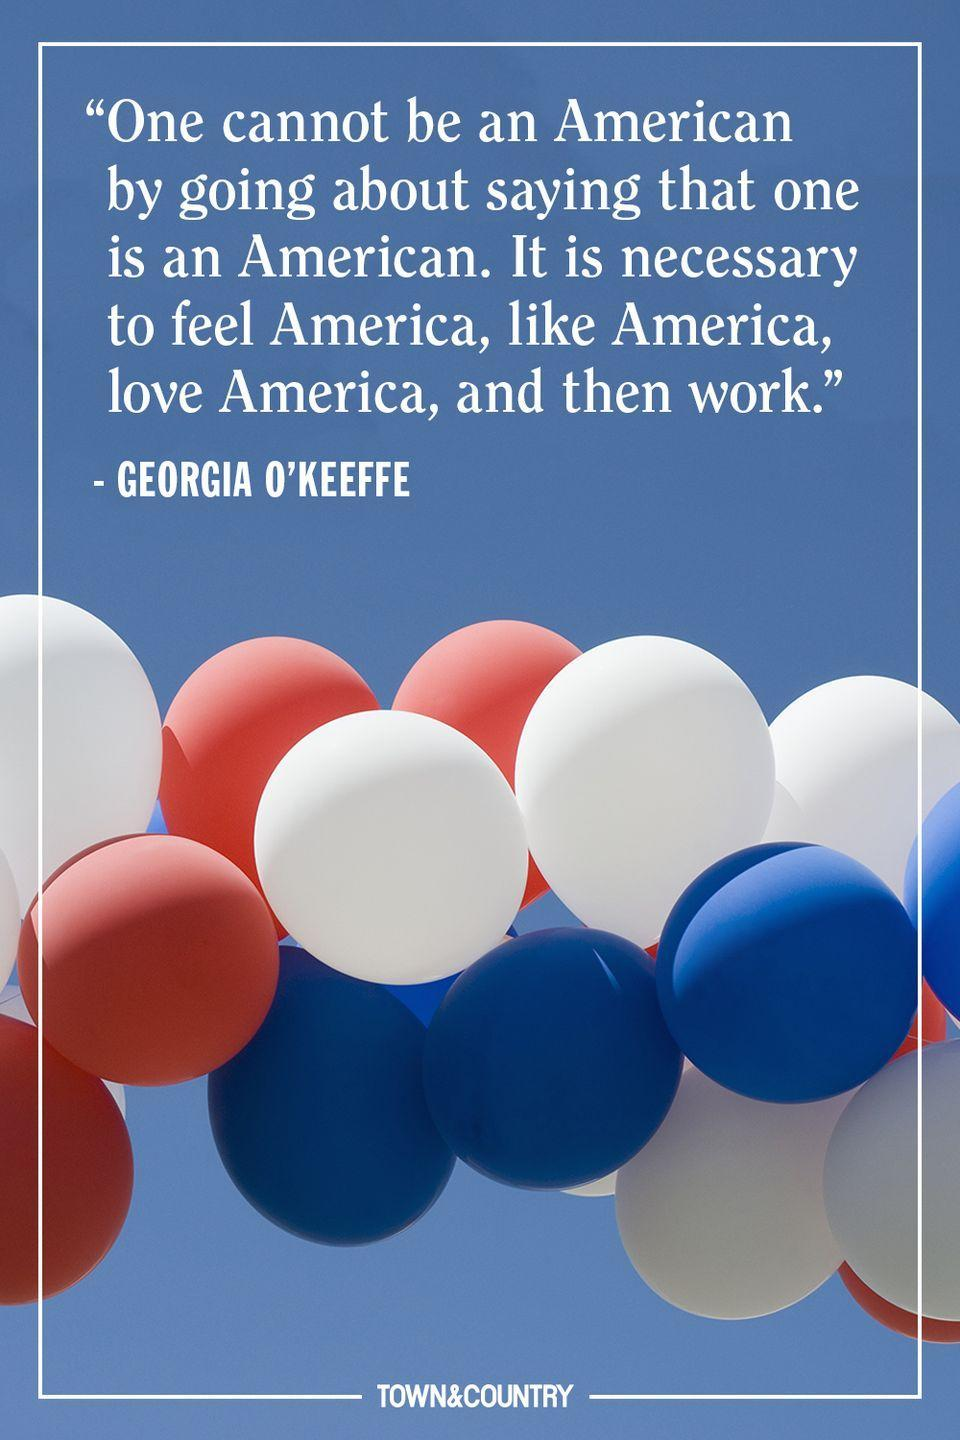 """<p>""""One cannot be an American by going about saying that one is an American. It is necessary to feel America, like America, love America, and then work."""" </p><p>— <em>Georgia O'Keeffe</em></p>"""